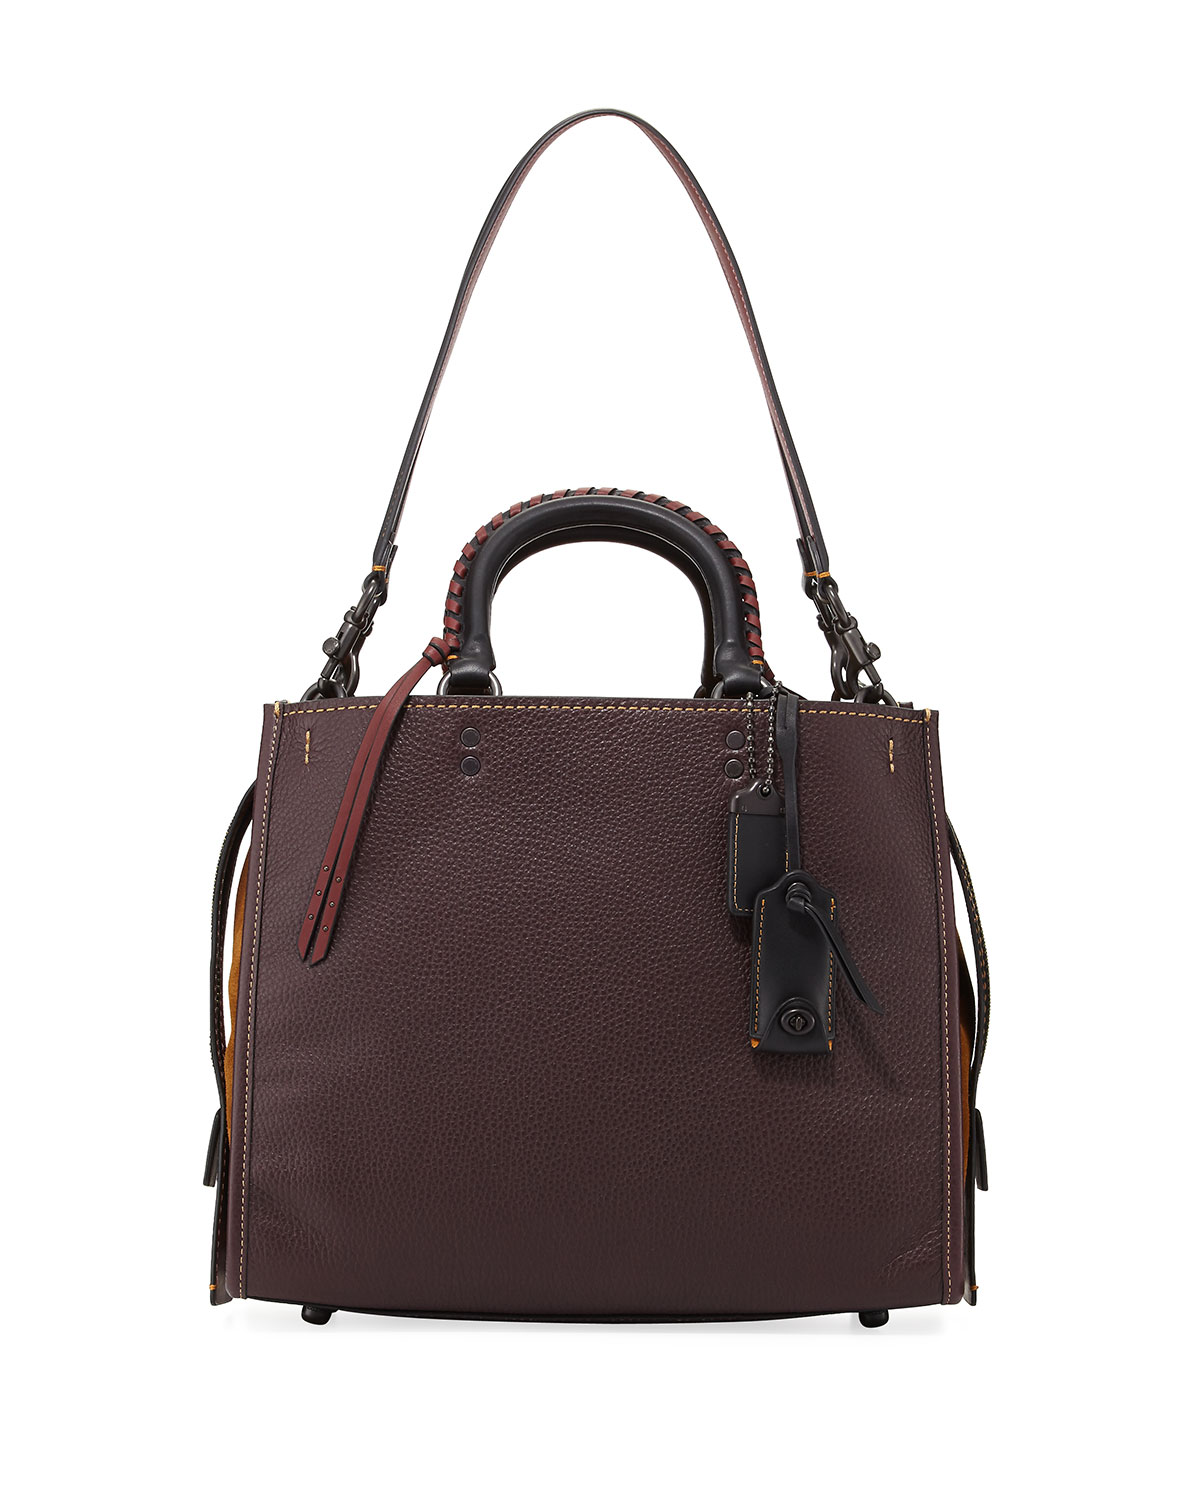 Rogue Pebbled Leather Bag with Whipstitched Handles